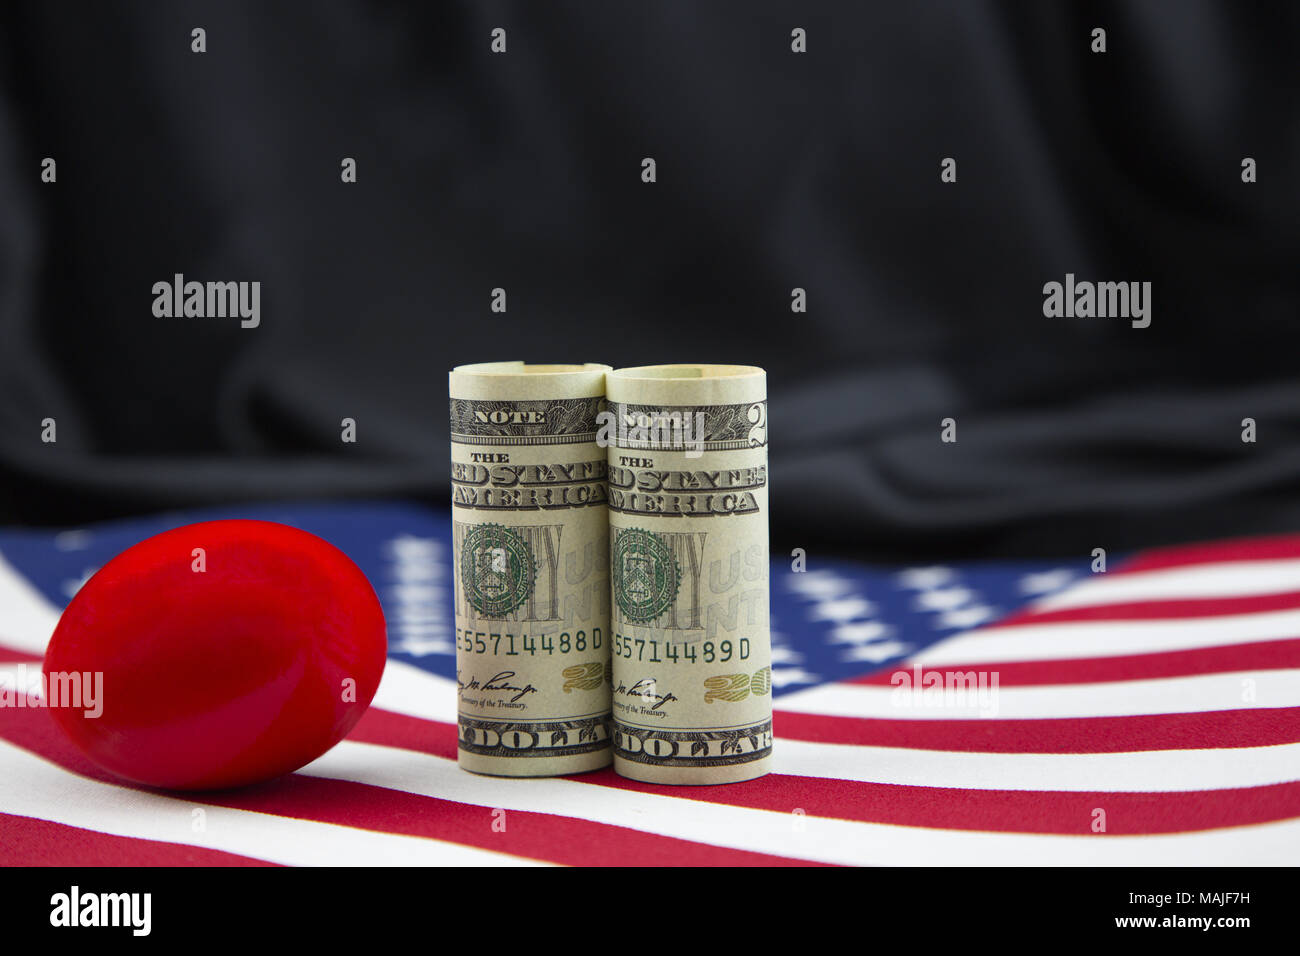 Cautionary red nest egg placed with American currency reflects business and investment risks inherent in American policy shifts in issues including ta - Stock Image